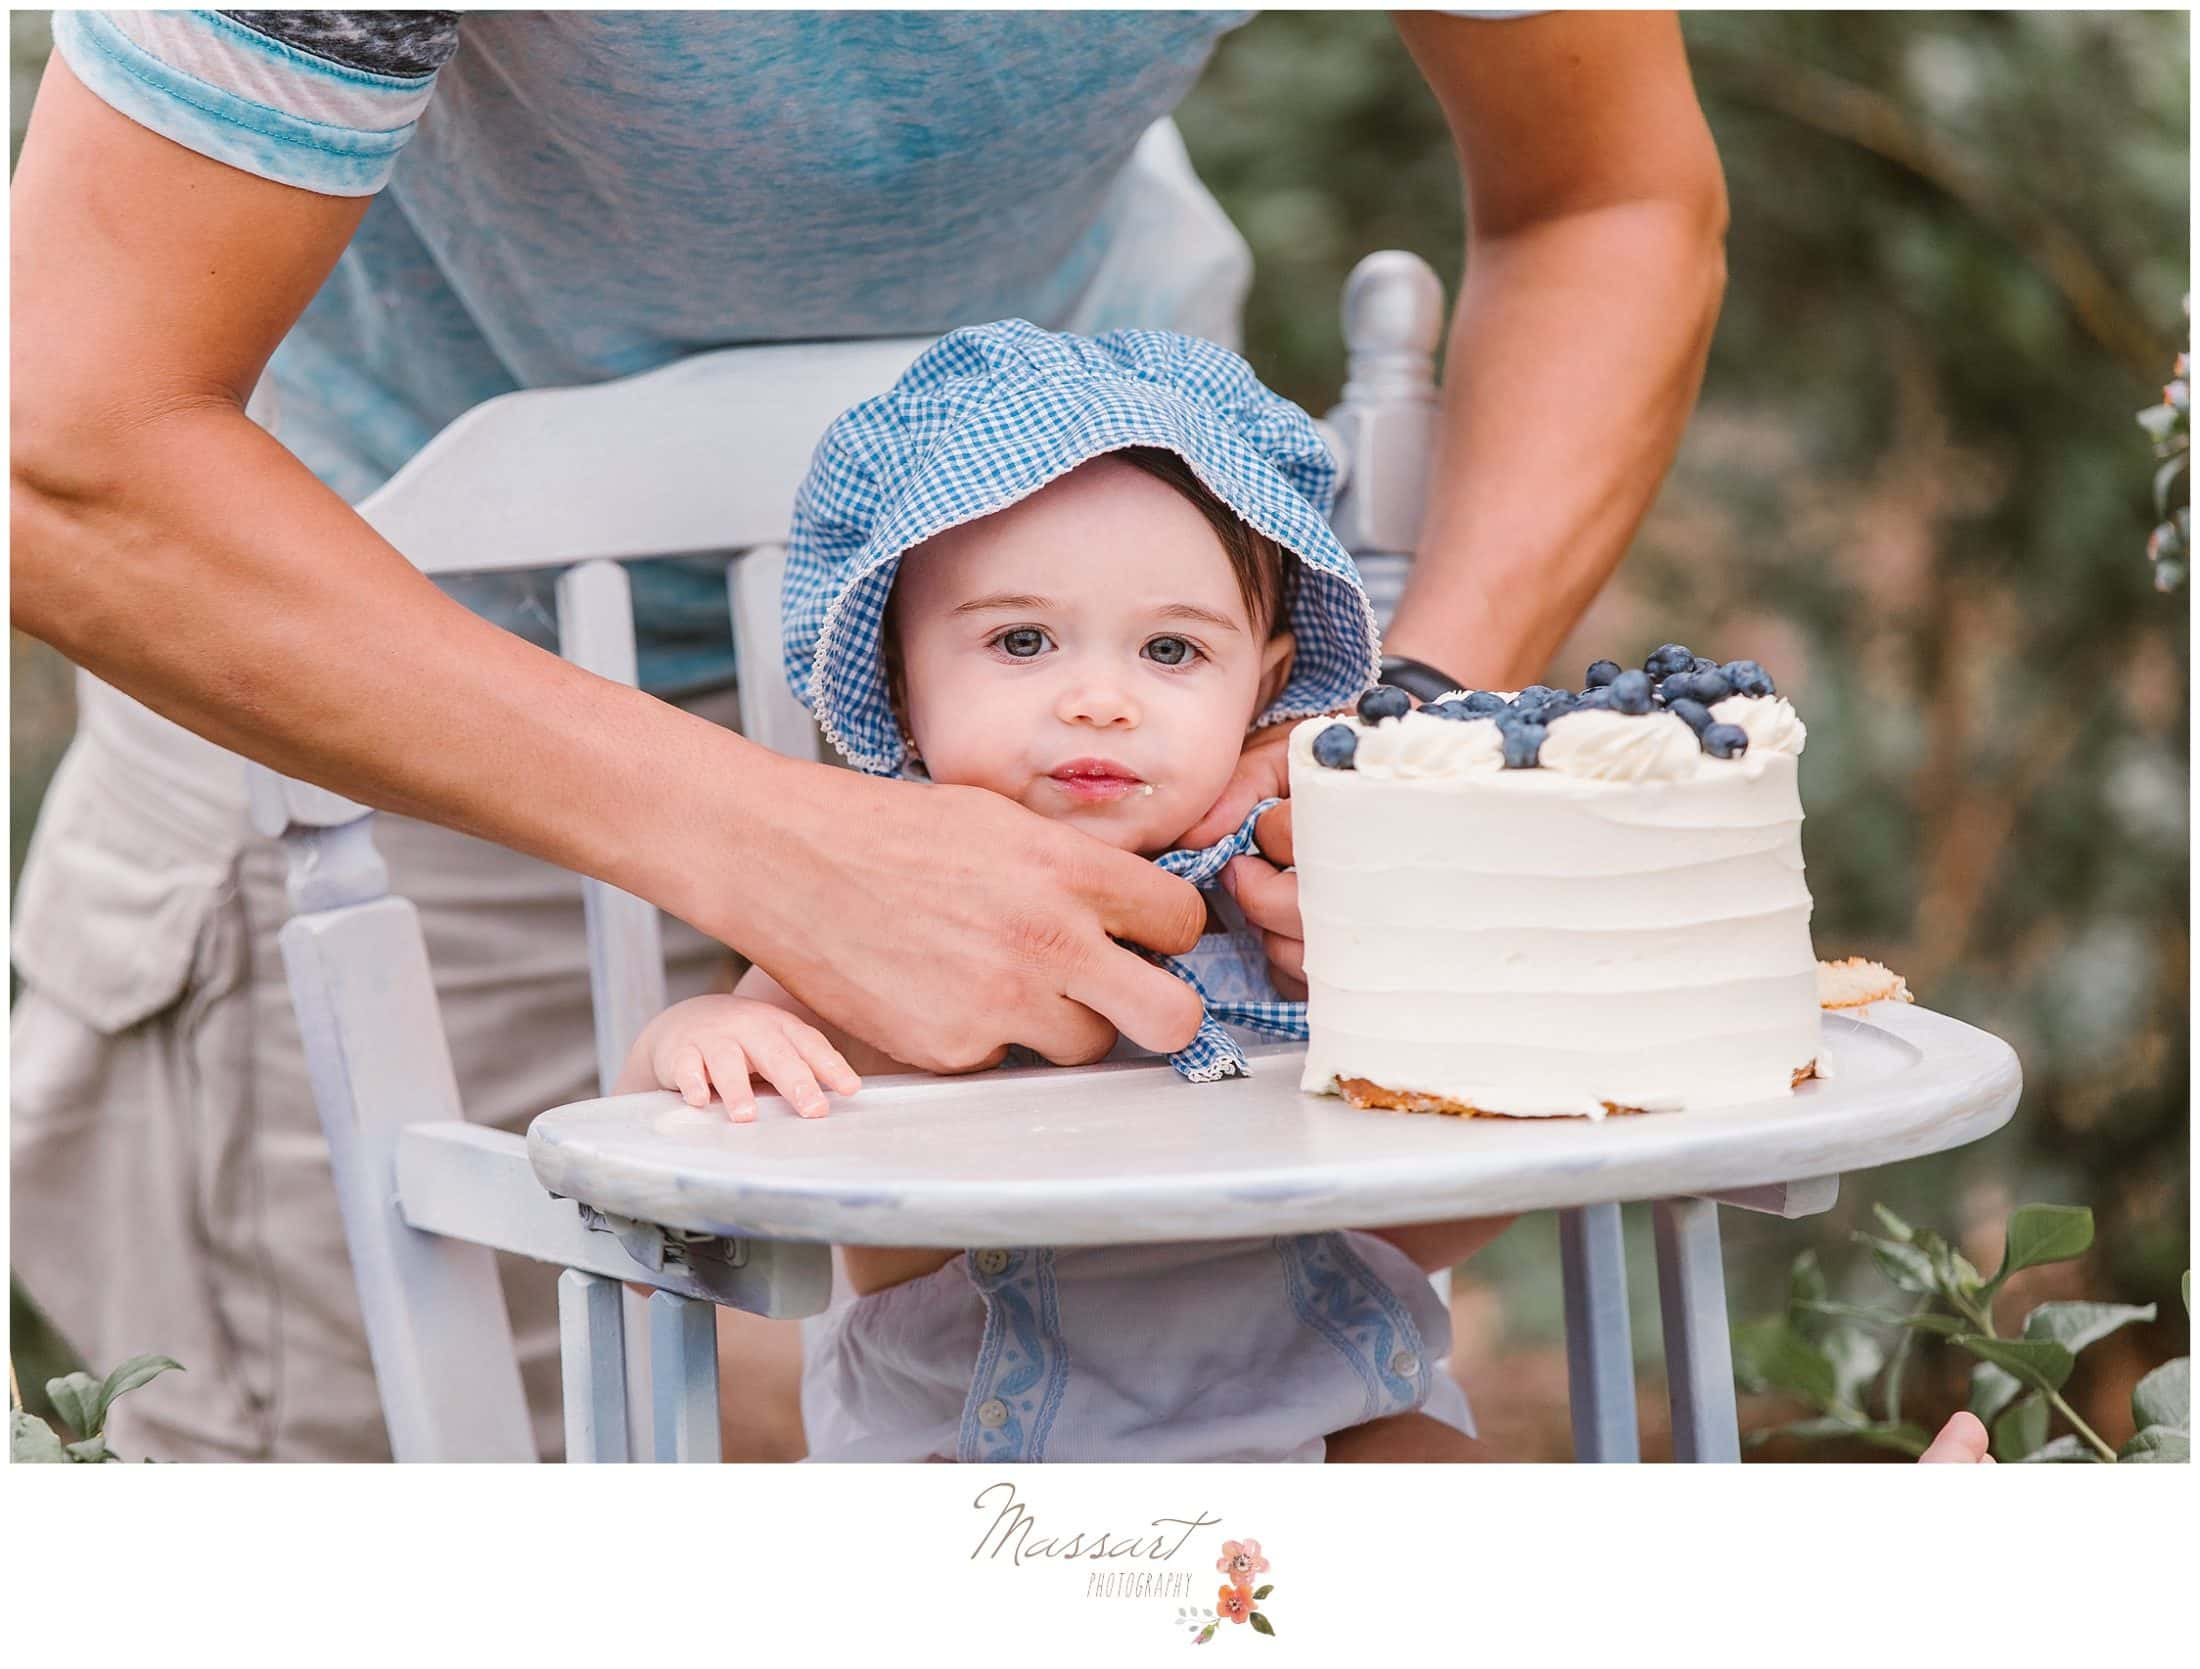 Baby wears a blue hat during her cake smash session at the blueberry farm photographed by Massart Photography RI